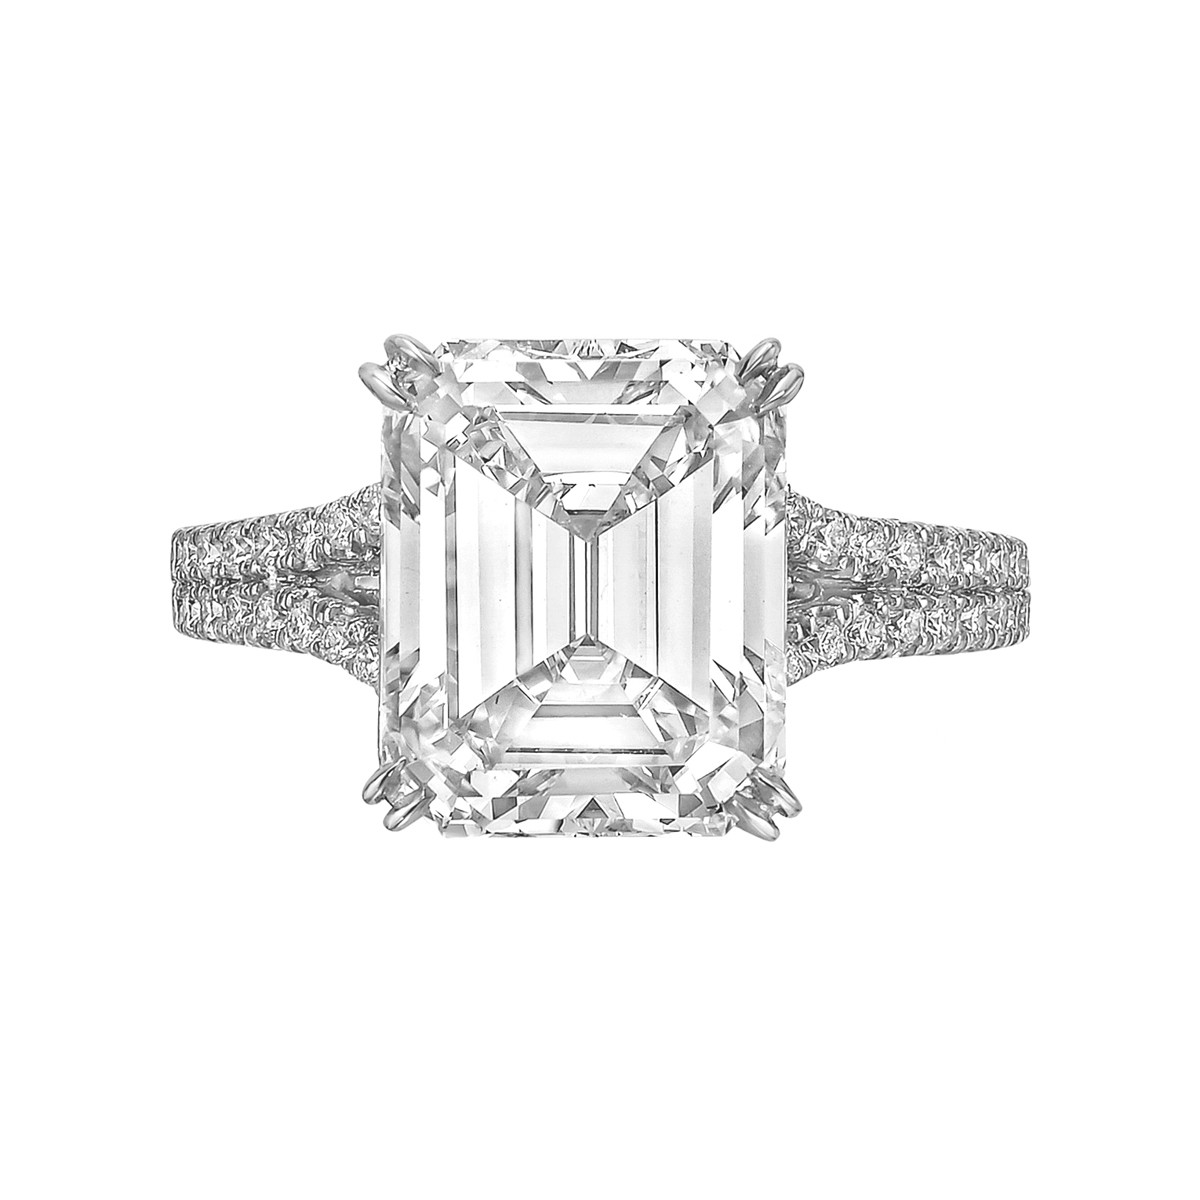 5.14ct Emerald-Cut Diamond Ring (F/VS1)